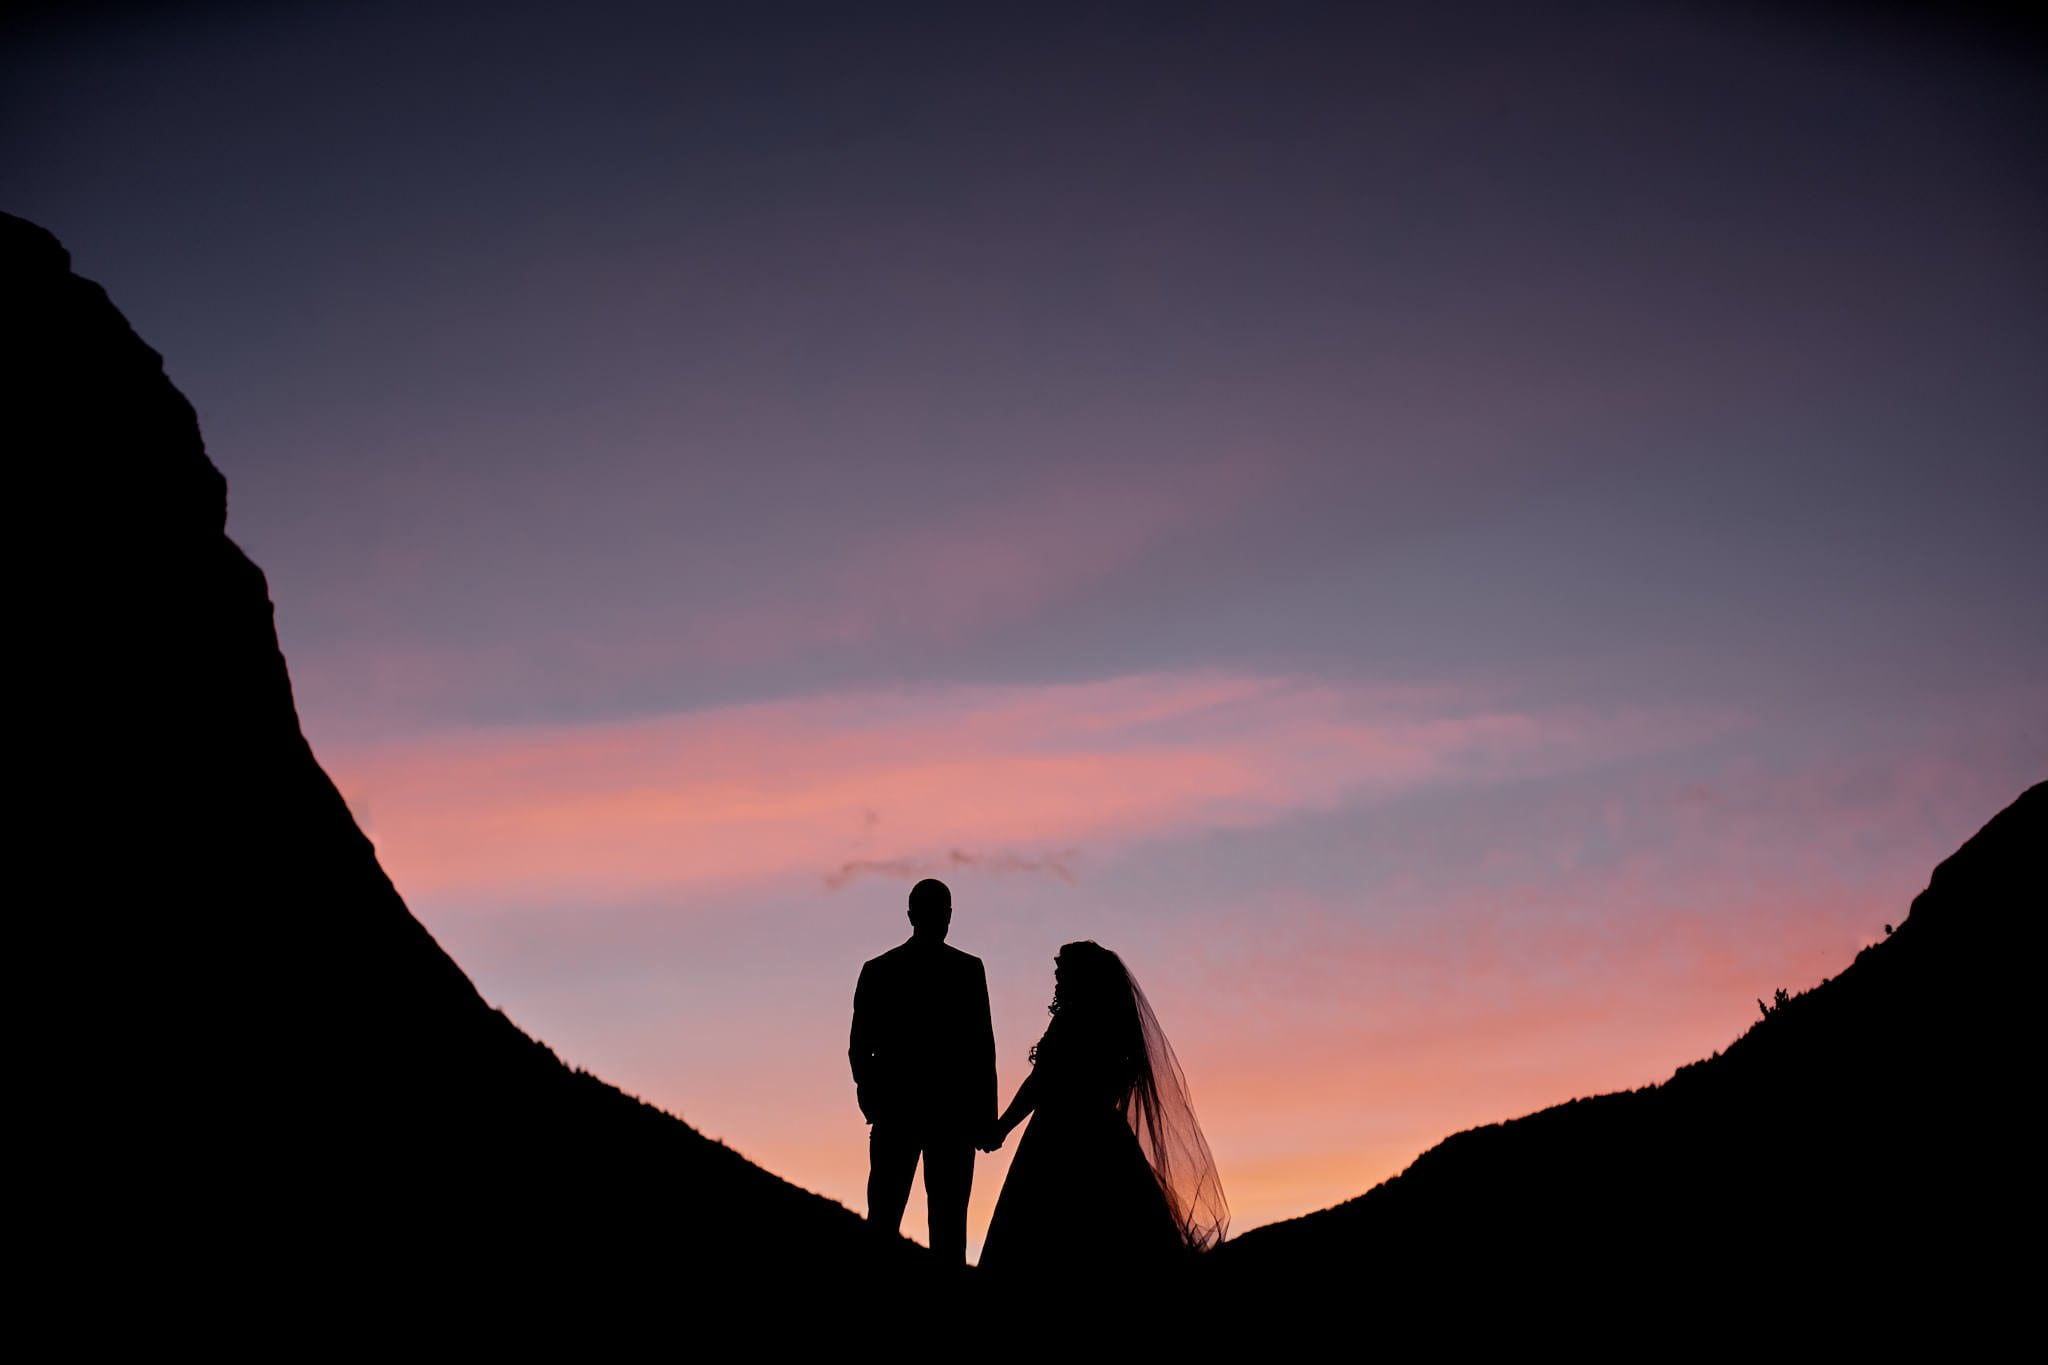 Wedding Photography sunset silhouette